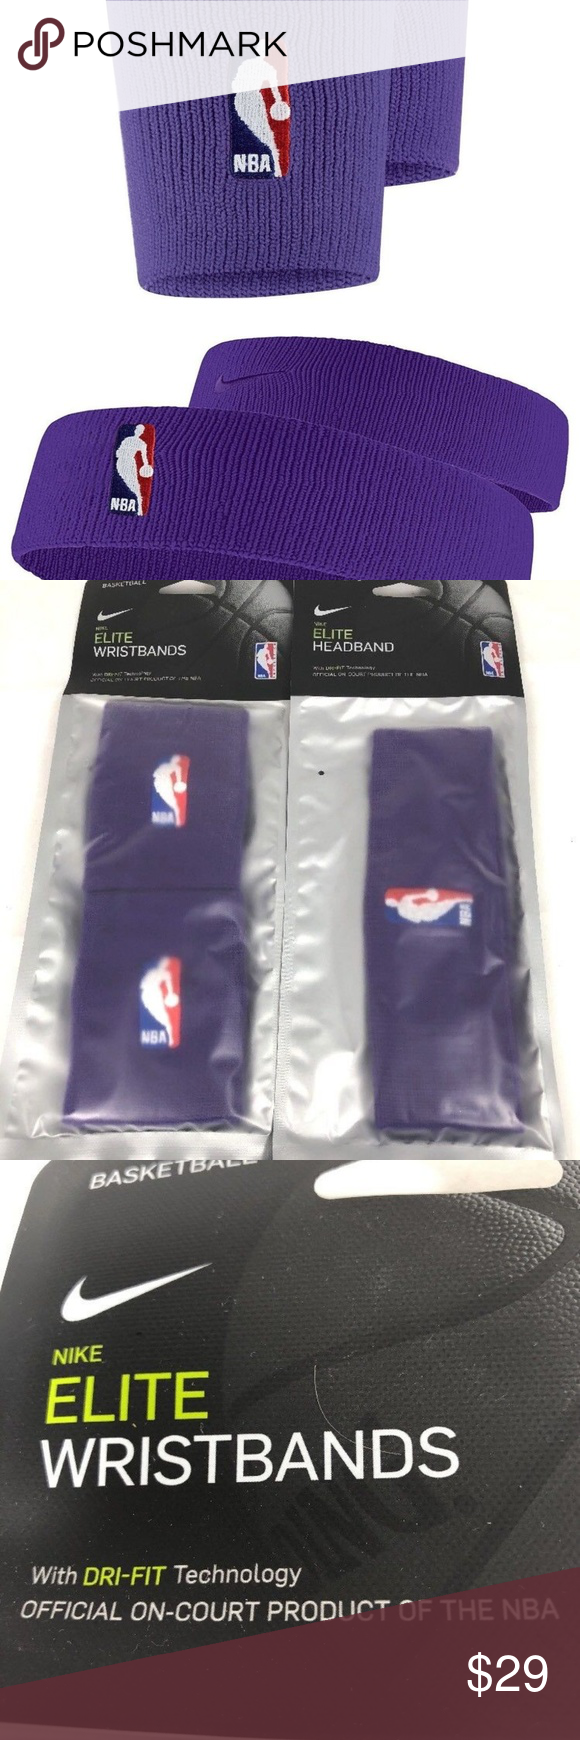 5029dc019ef NIKE Elite Dri Fit NBA Headband   Wristband SET NIKE Elite Dri Fit Headband    Wristband